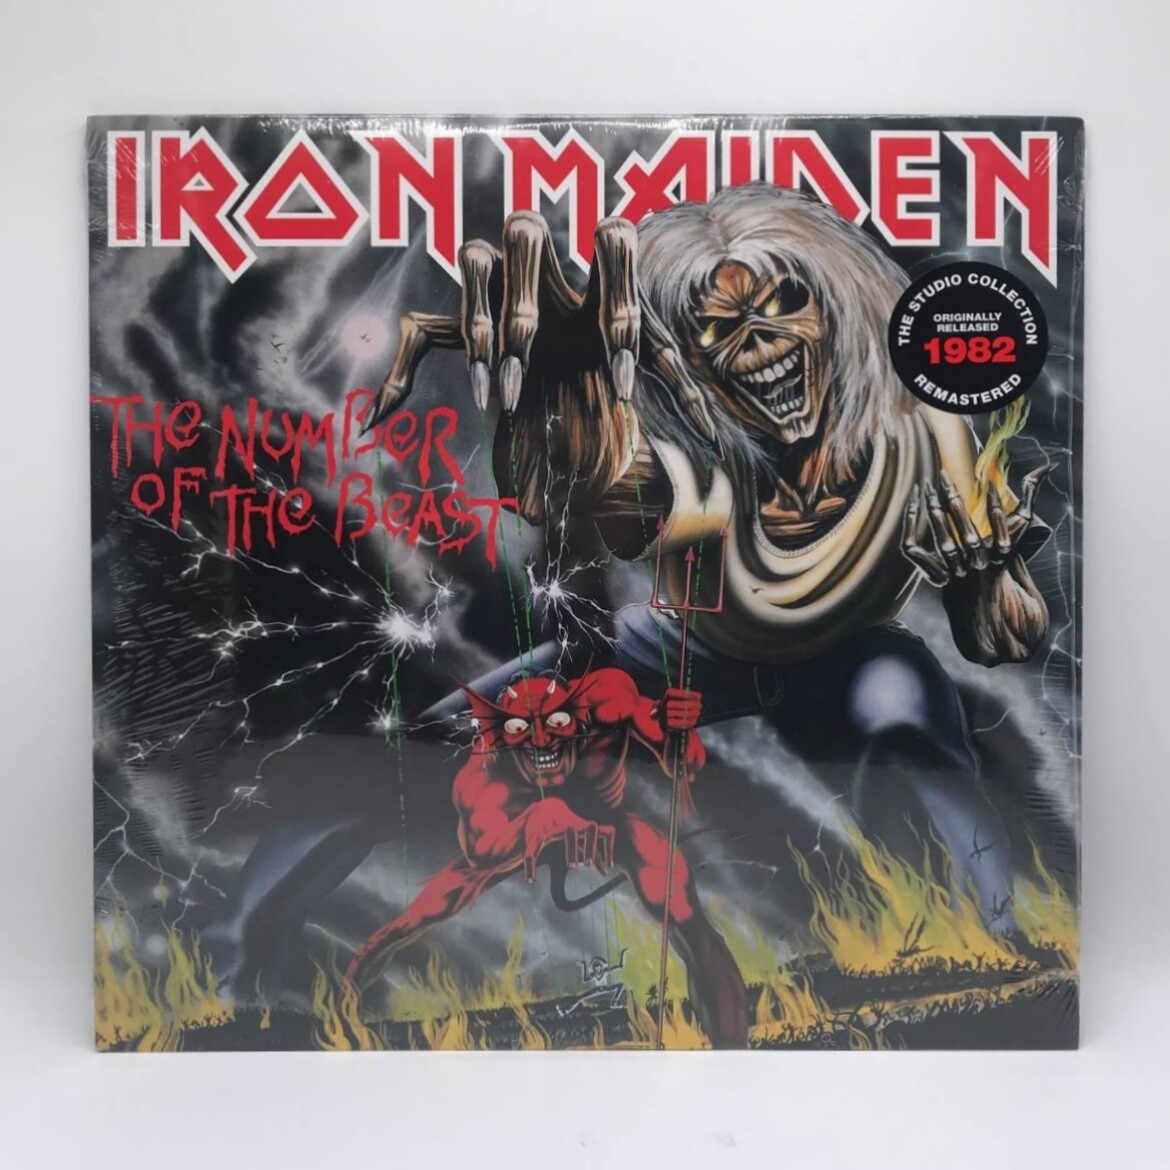 IRON MAIDEN -THE NUMBER OF THE BEAST- LP